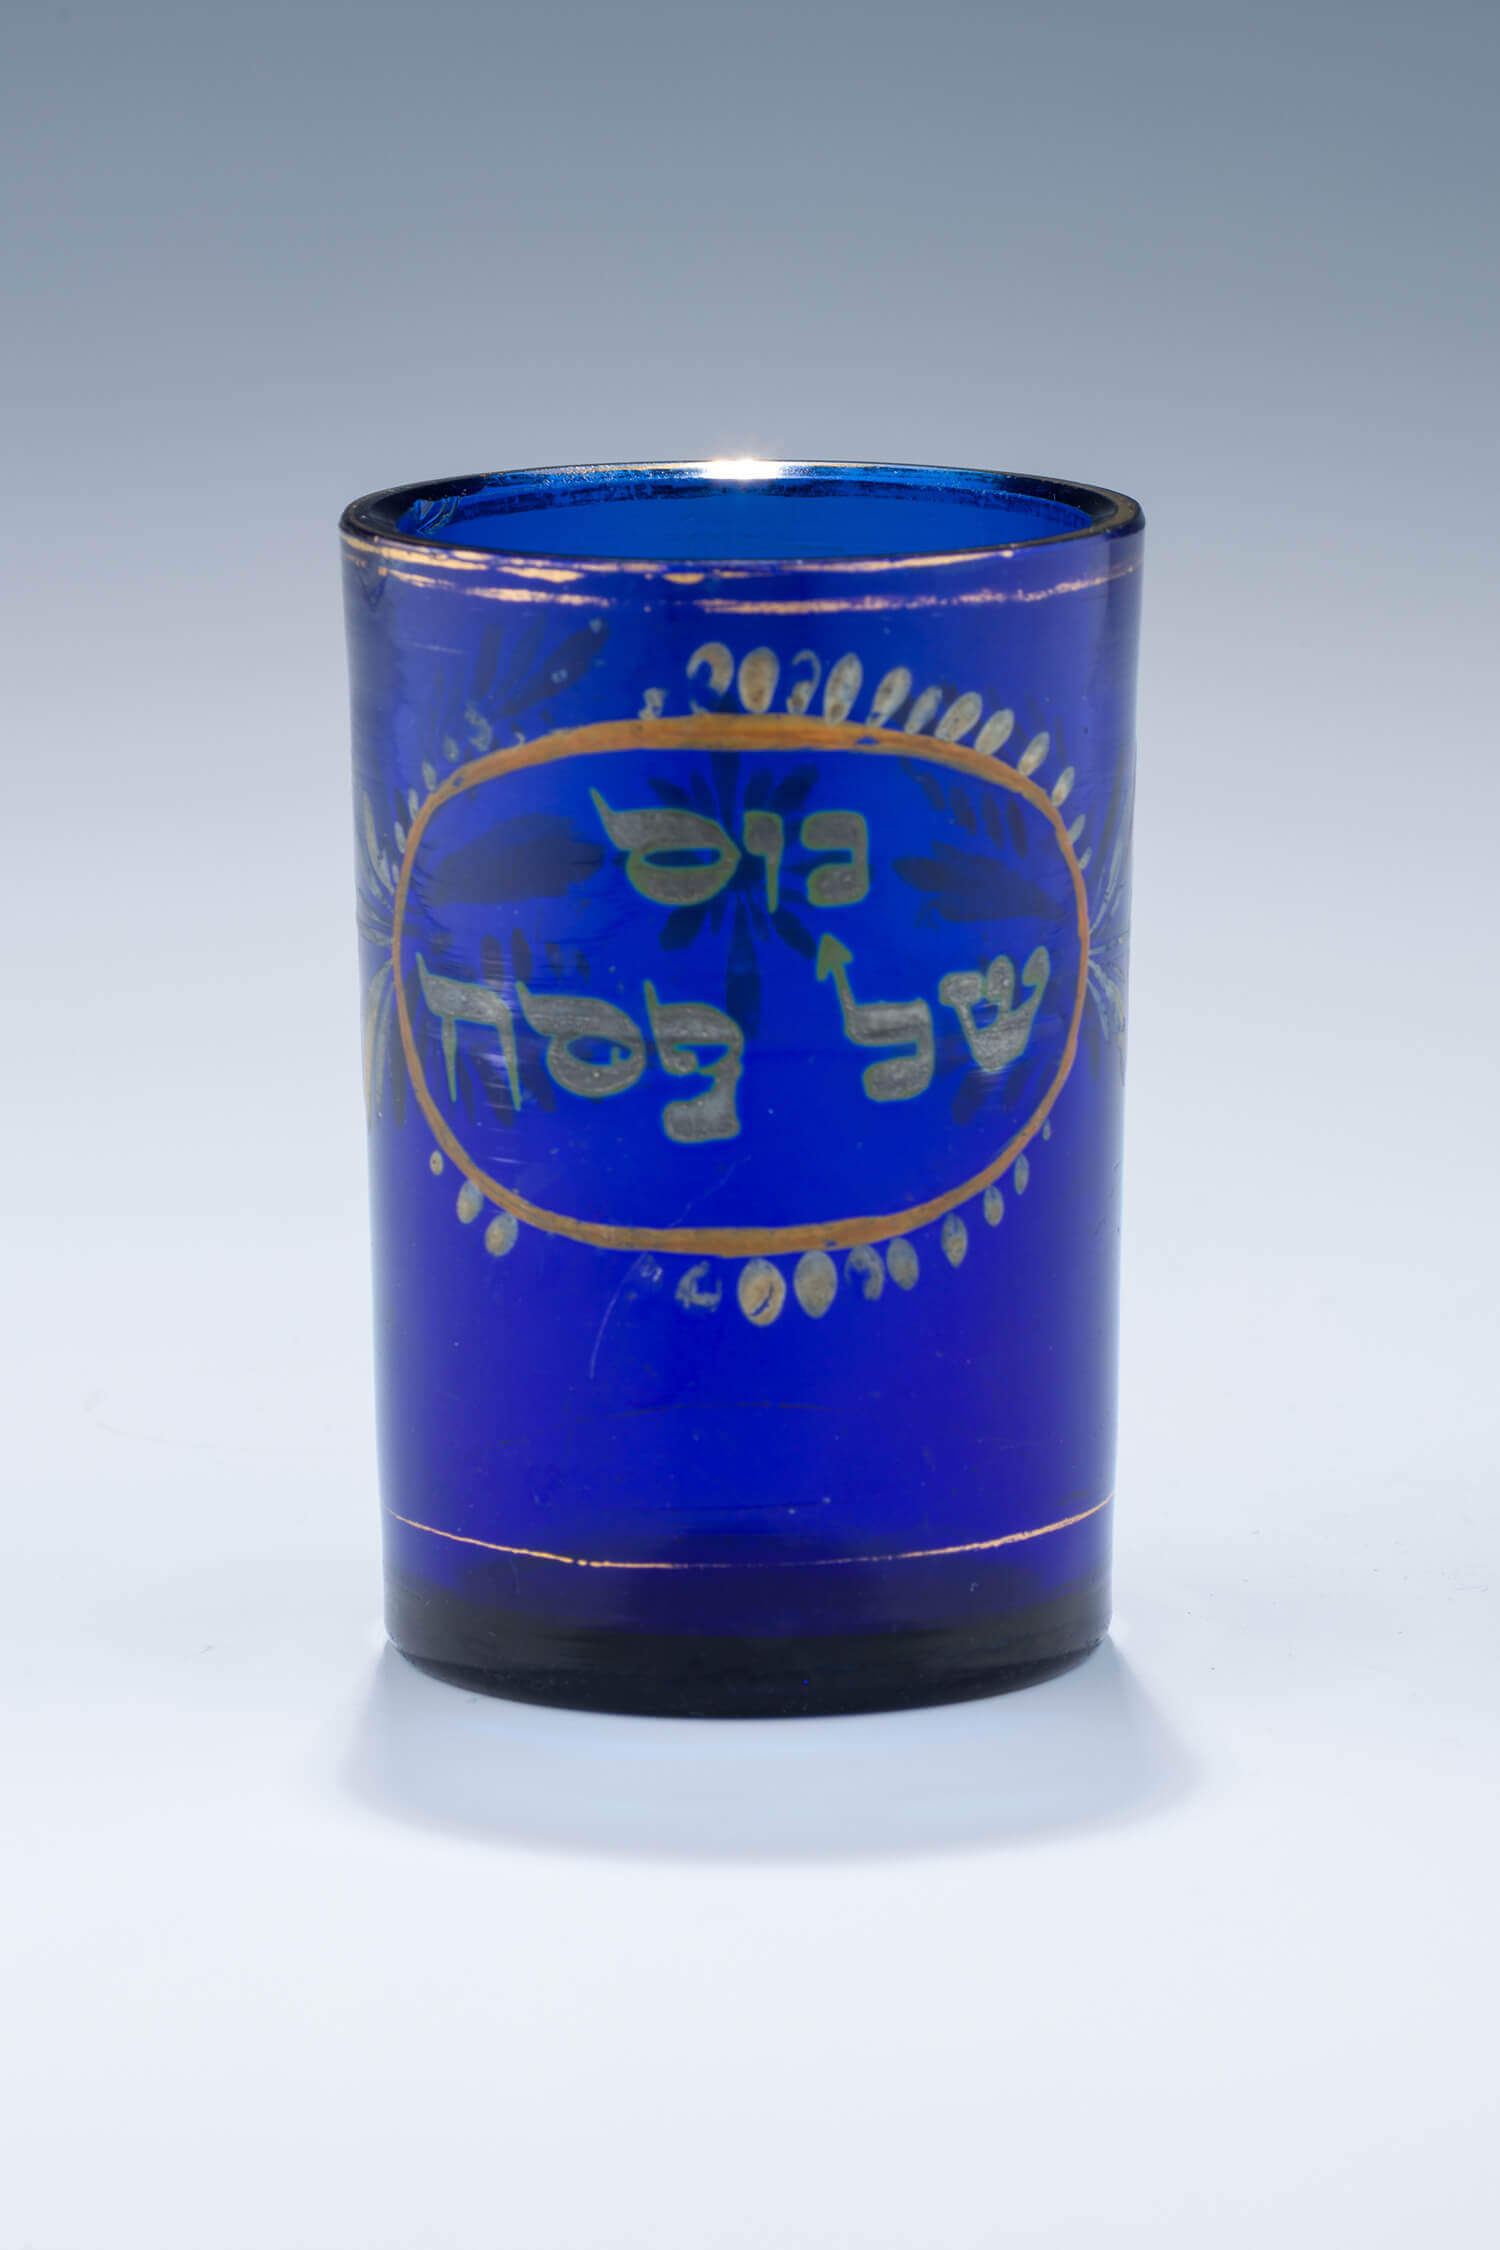 012. A BLUE GLASS PASSOVER BEAKER